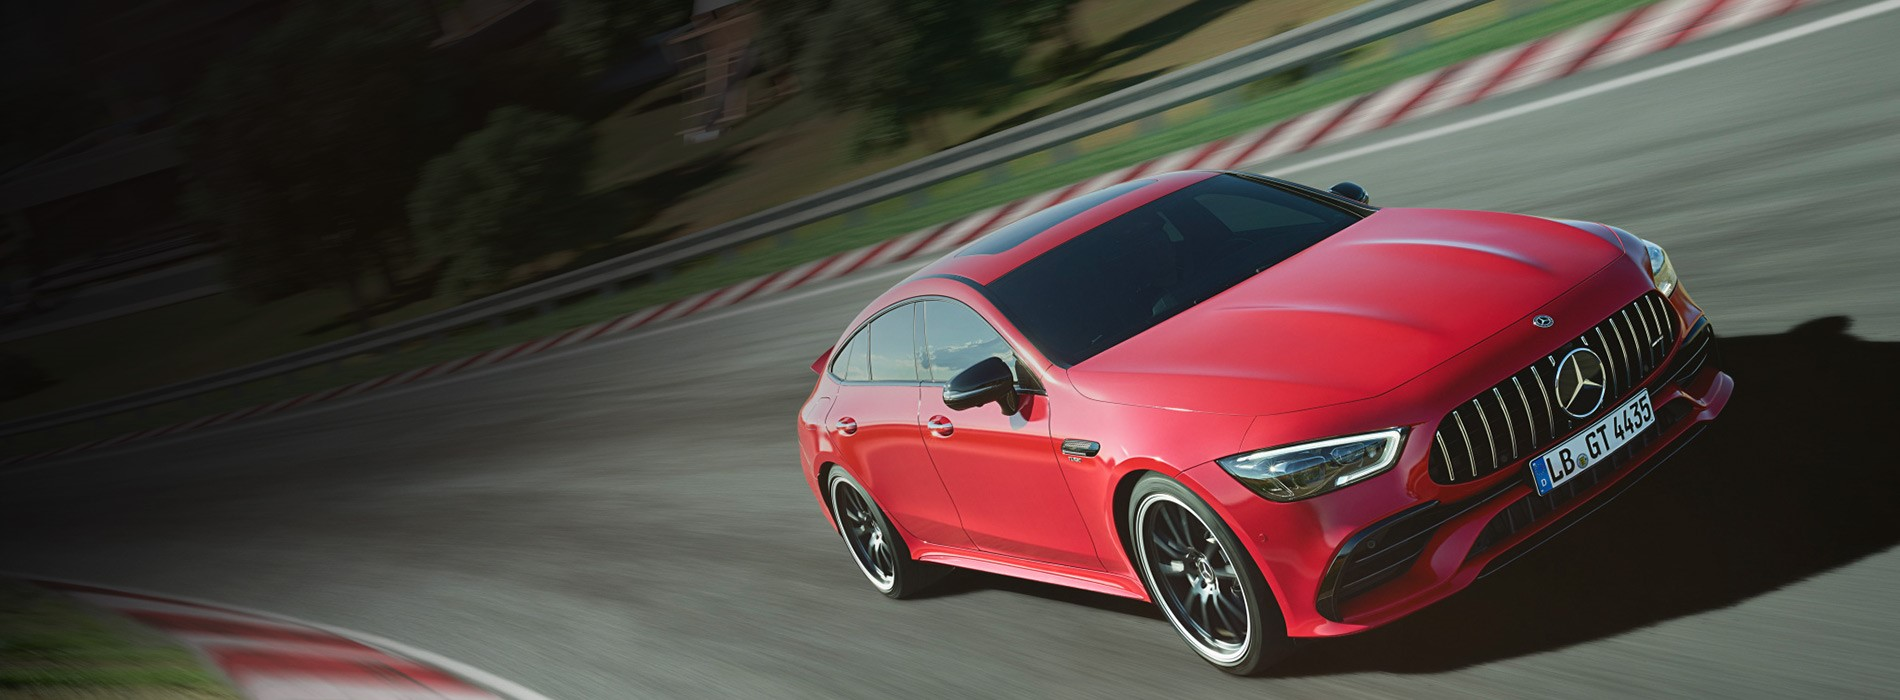 Mercedes-AMG GT 4-Door Coupé 2020